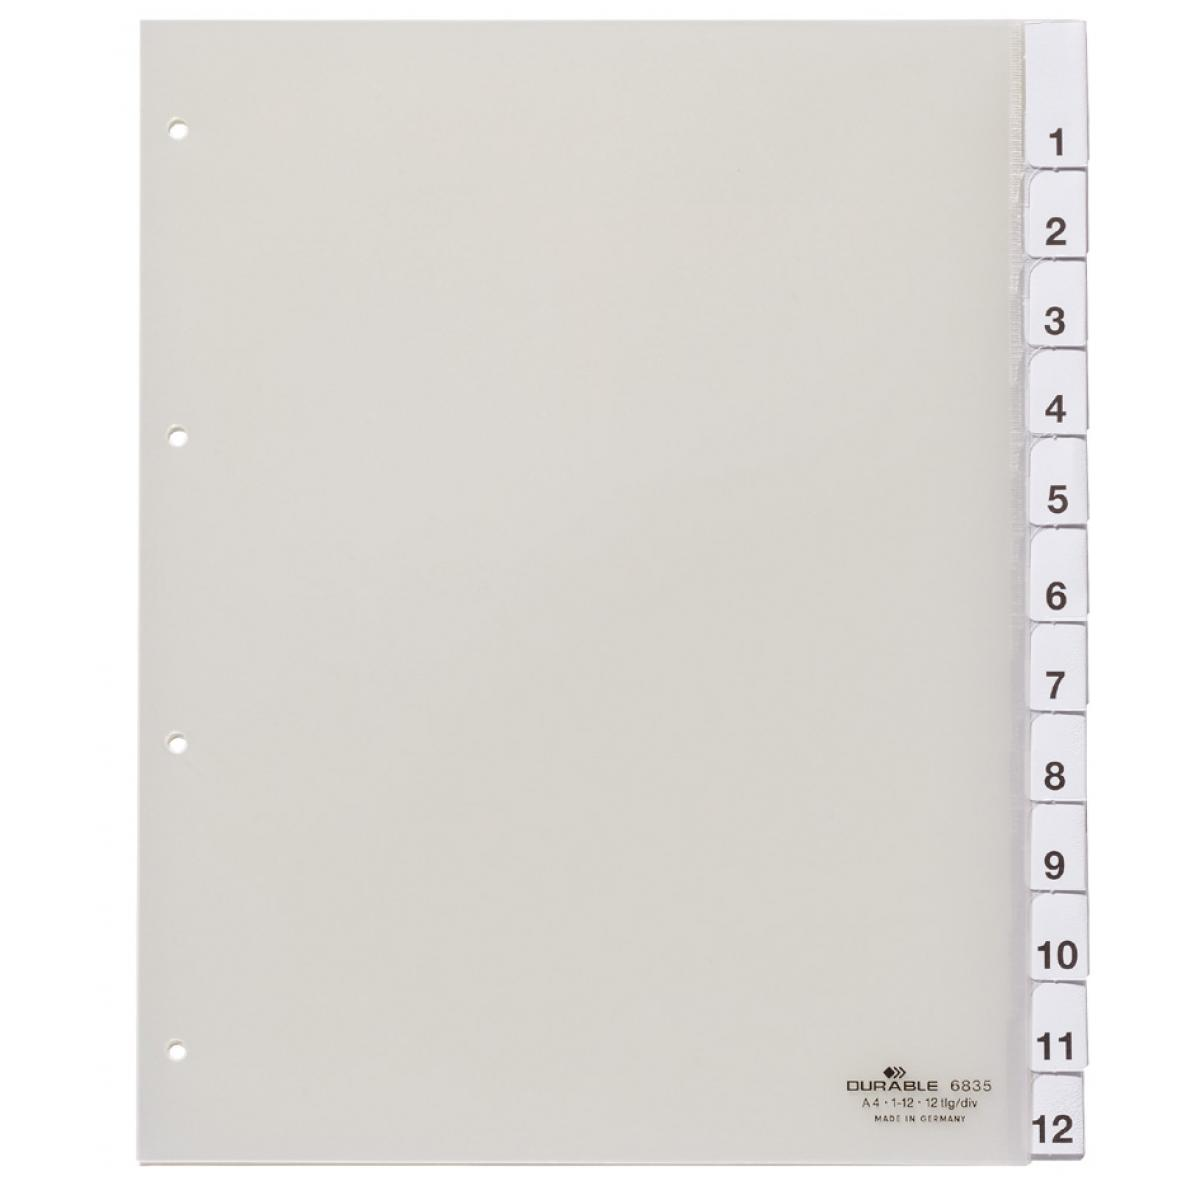 DURABLE Kunststoff-Register, A4, 12-teilig, transparent (4005546640006)